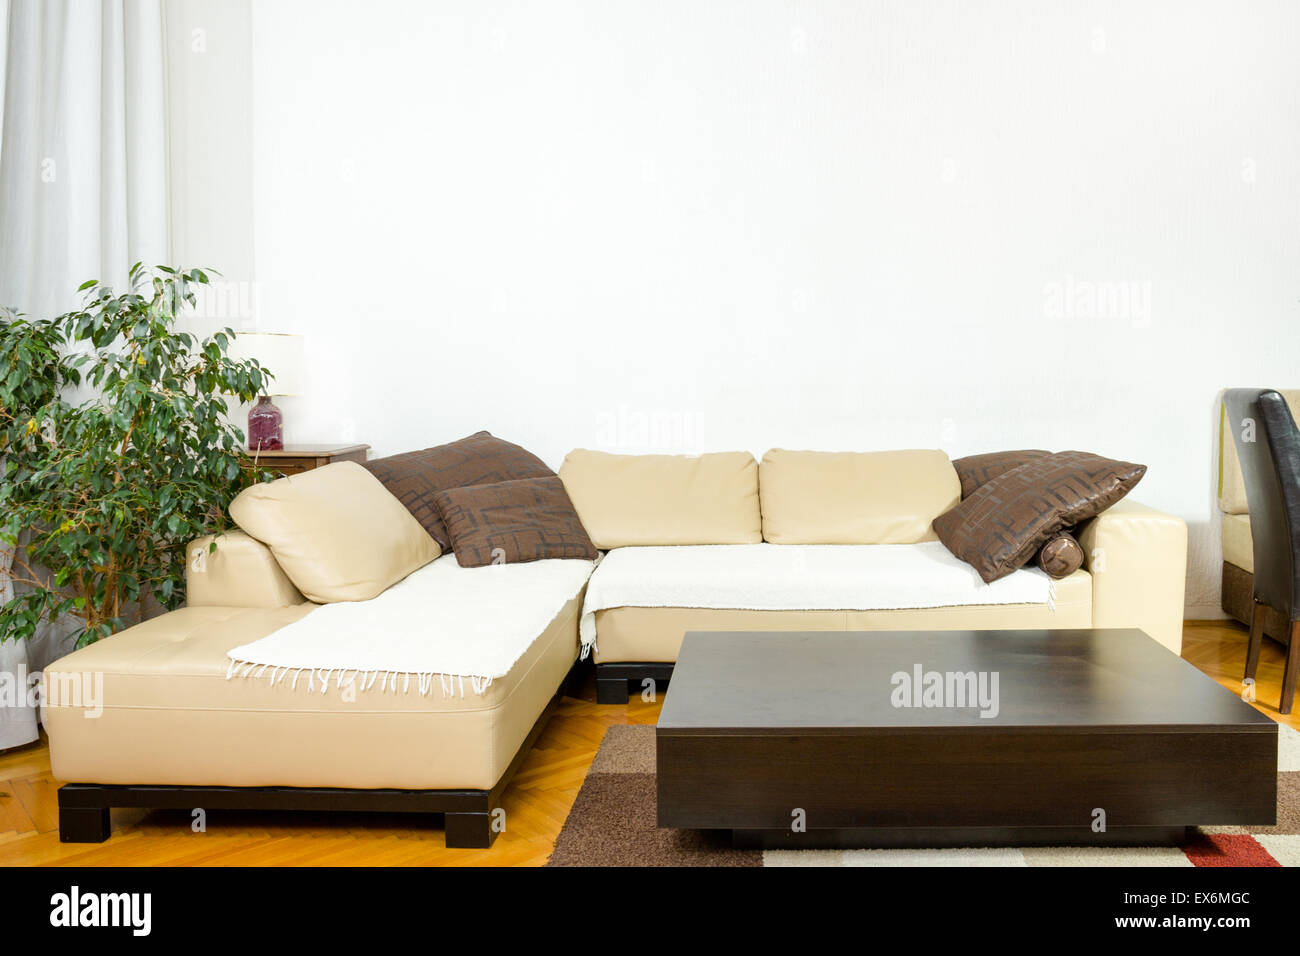 Dinner Sofa Empty Living Room With Angular Sofa Dinner Wagon Plant Curtains